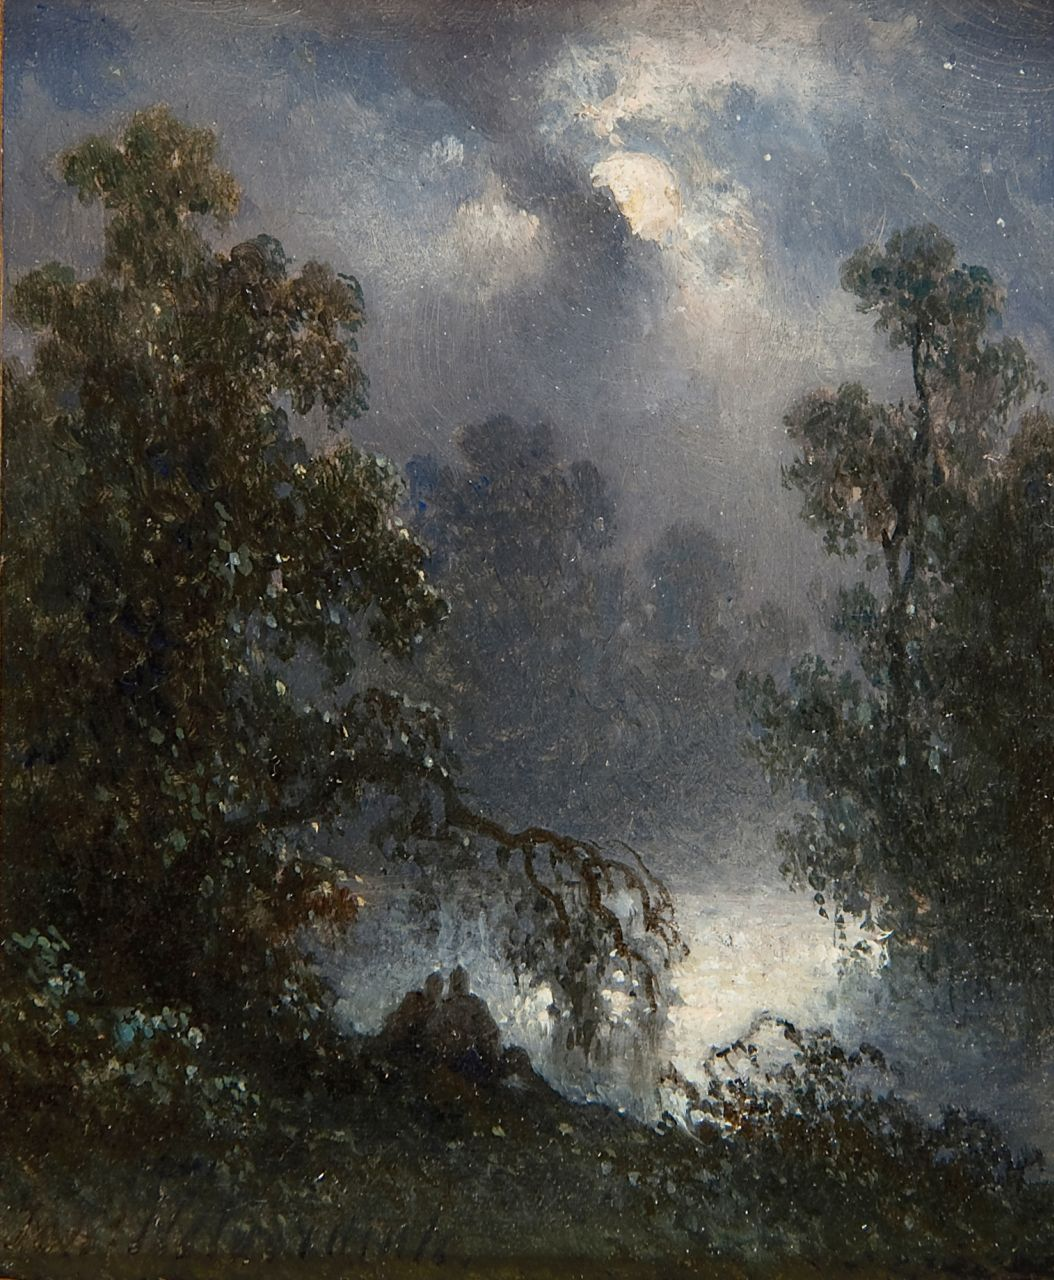 Hilverdink J.  | Johannes Hilverdink, A pond with two figures by moonlight, oil on panel 10.8 x 9.1 cm, signed l.l.